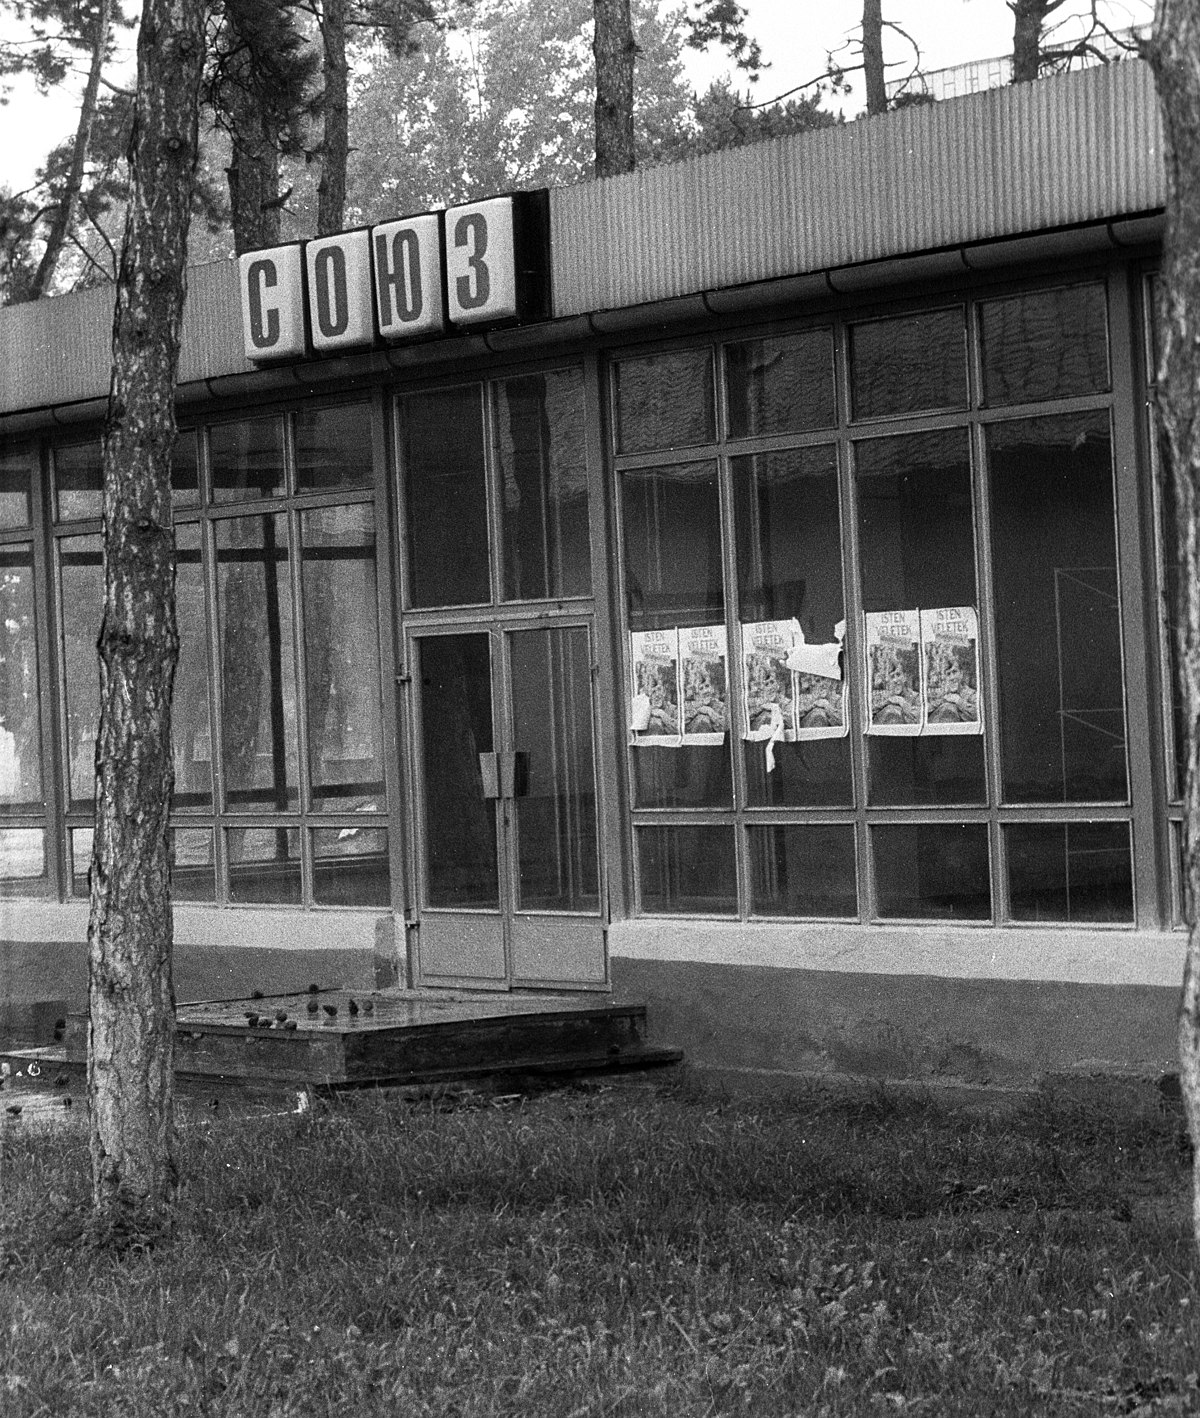 File:Abandoned Building, Cyrillic Alphabet, Poster